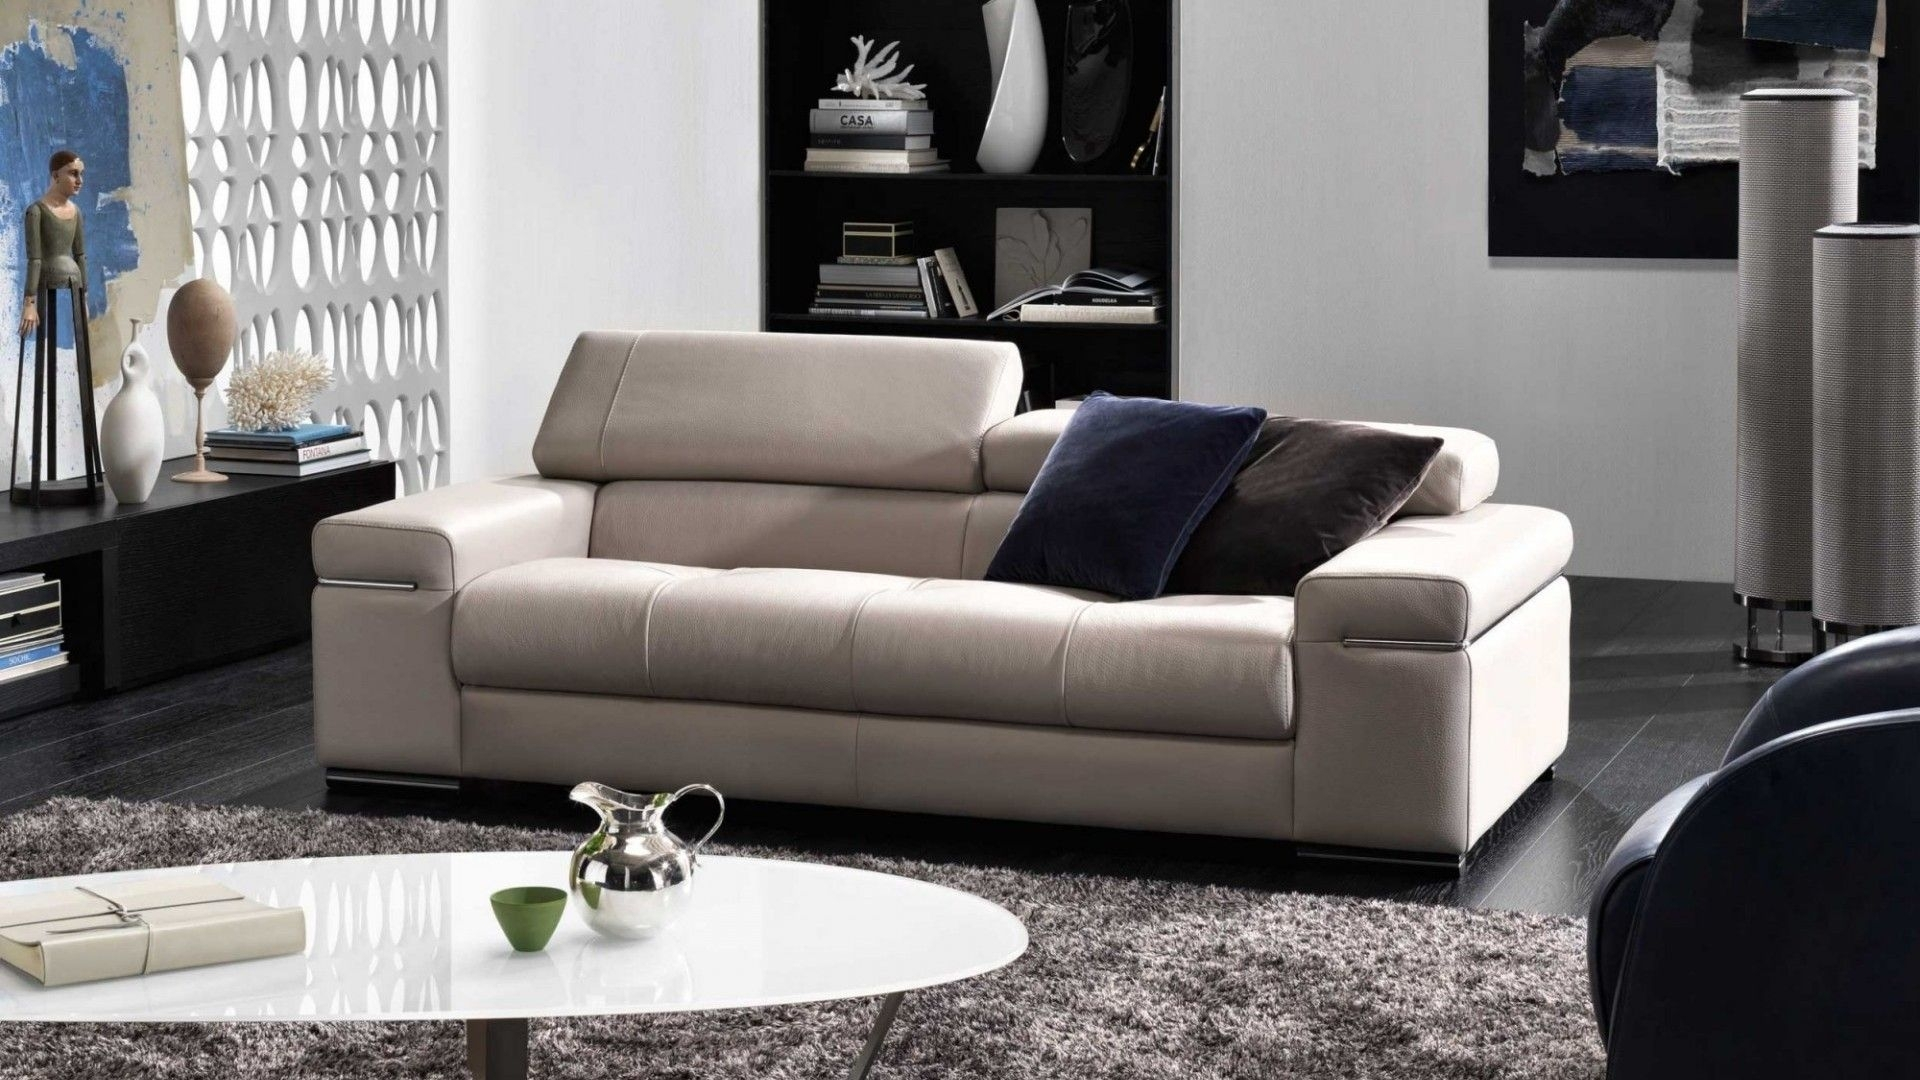 Natuzzi Italia Leather Avana Sofa - Natuzzi Italia Philadelphia regarding Philadelphia Sectional Sofas (Image 3 of 10)